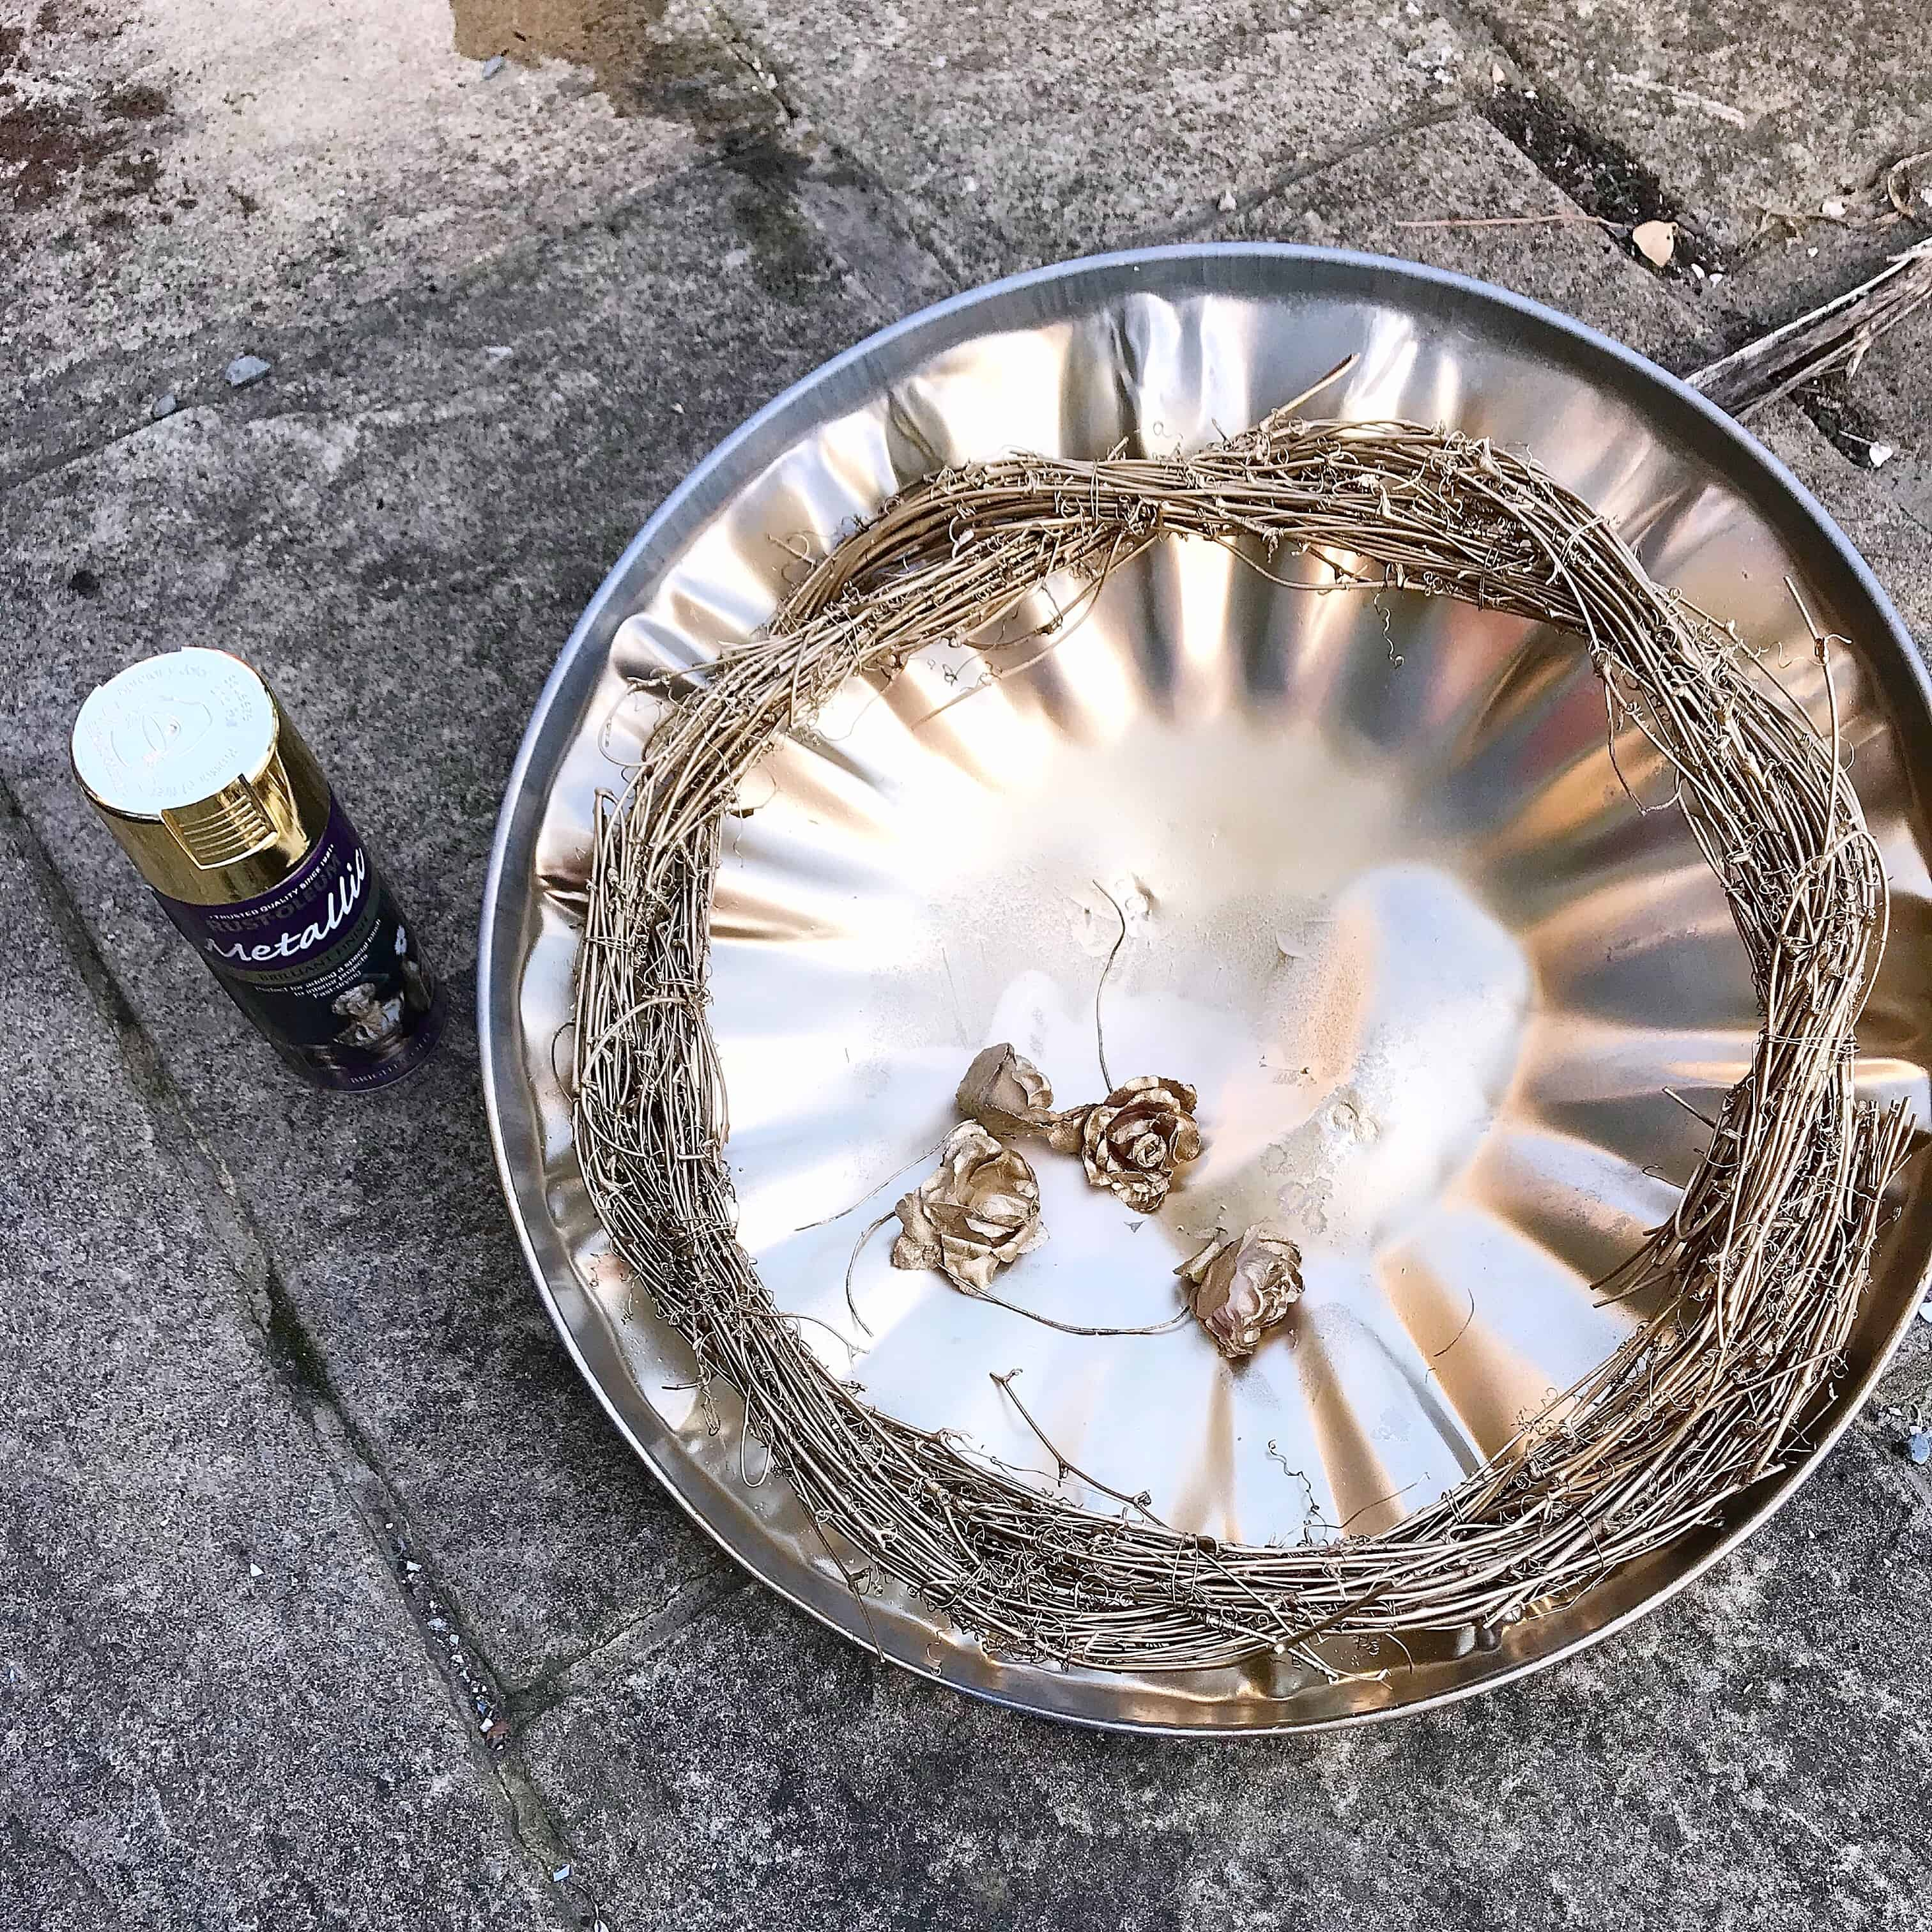 Step 1 to make an easy metallic wreath - spray it gold